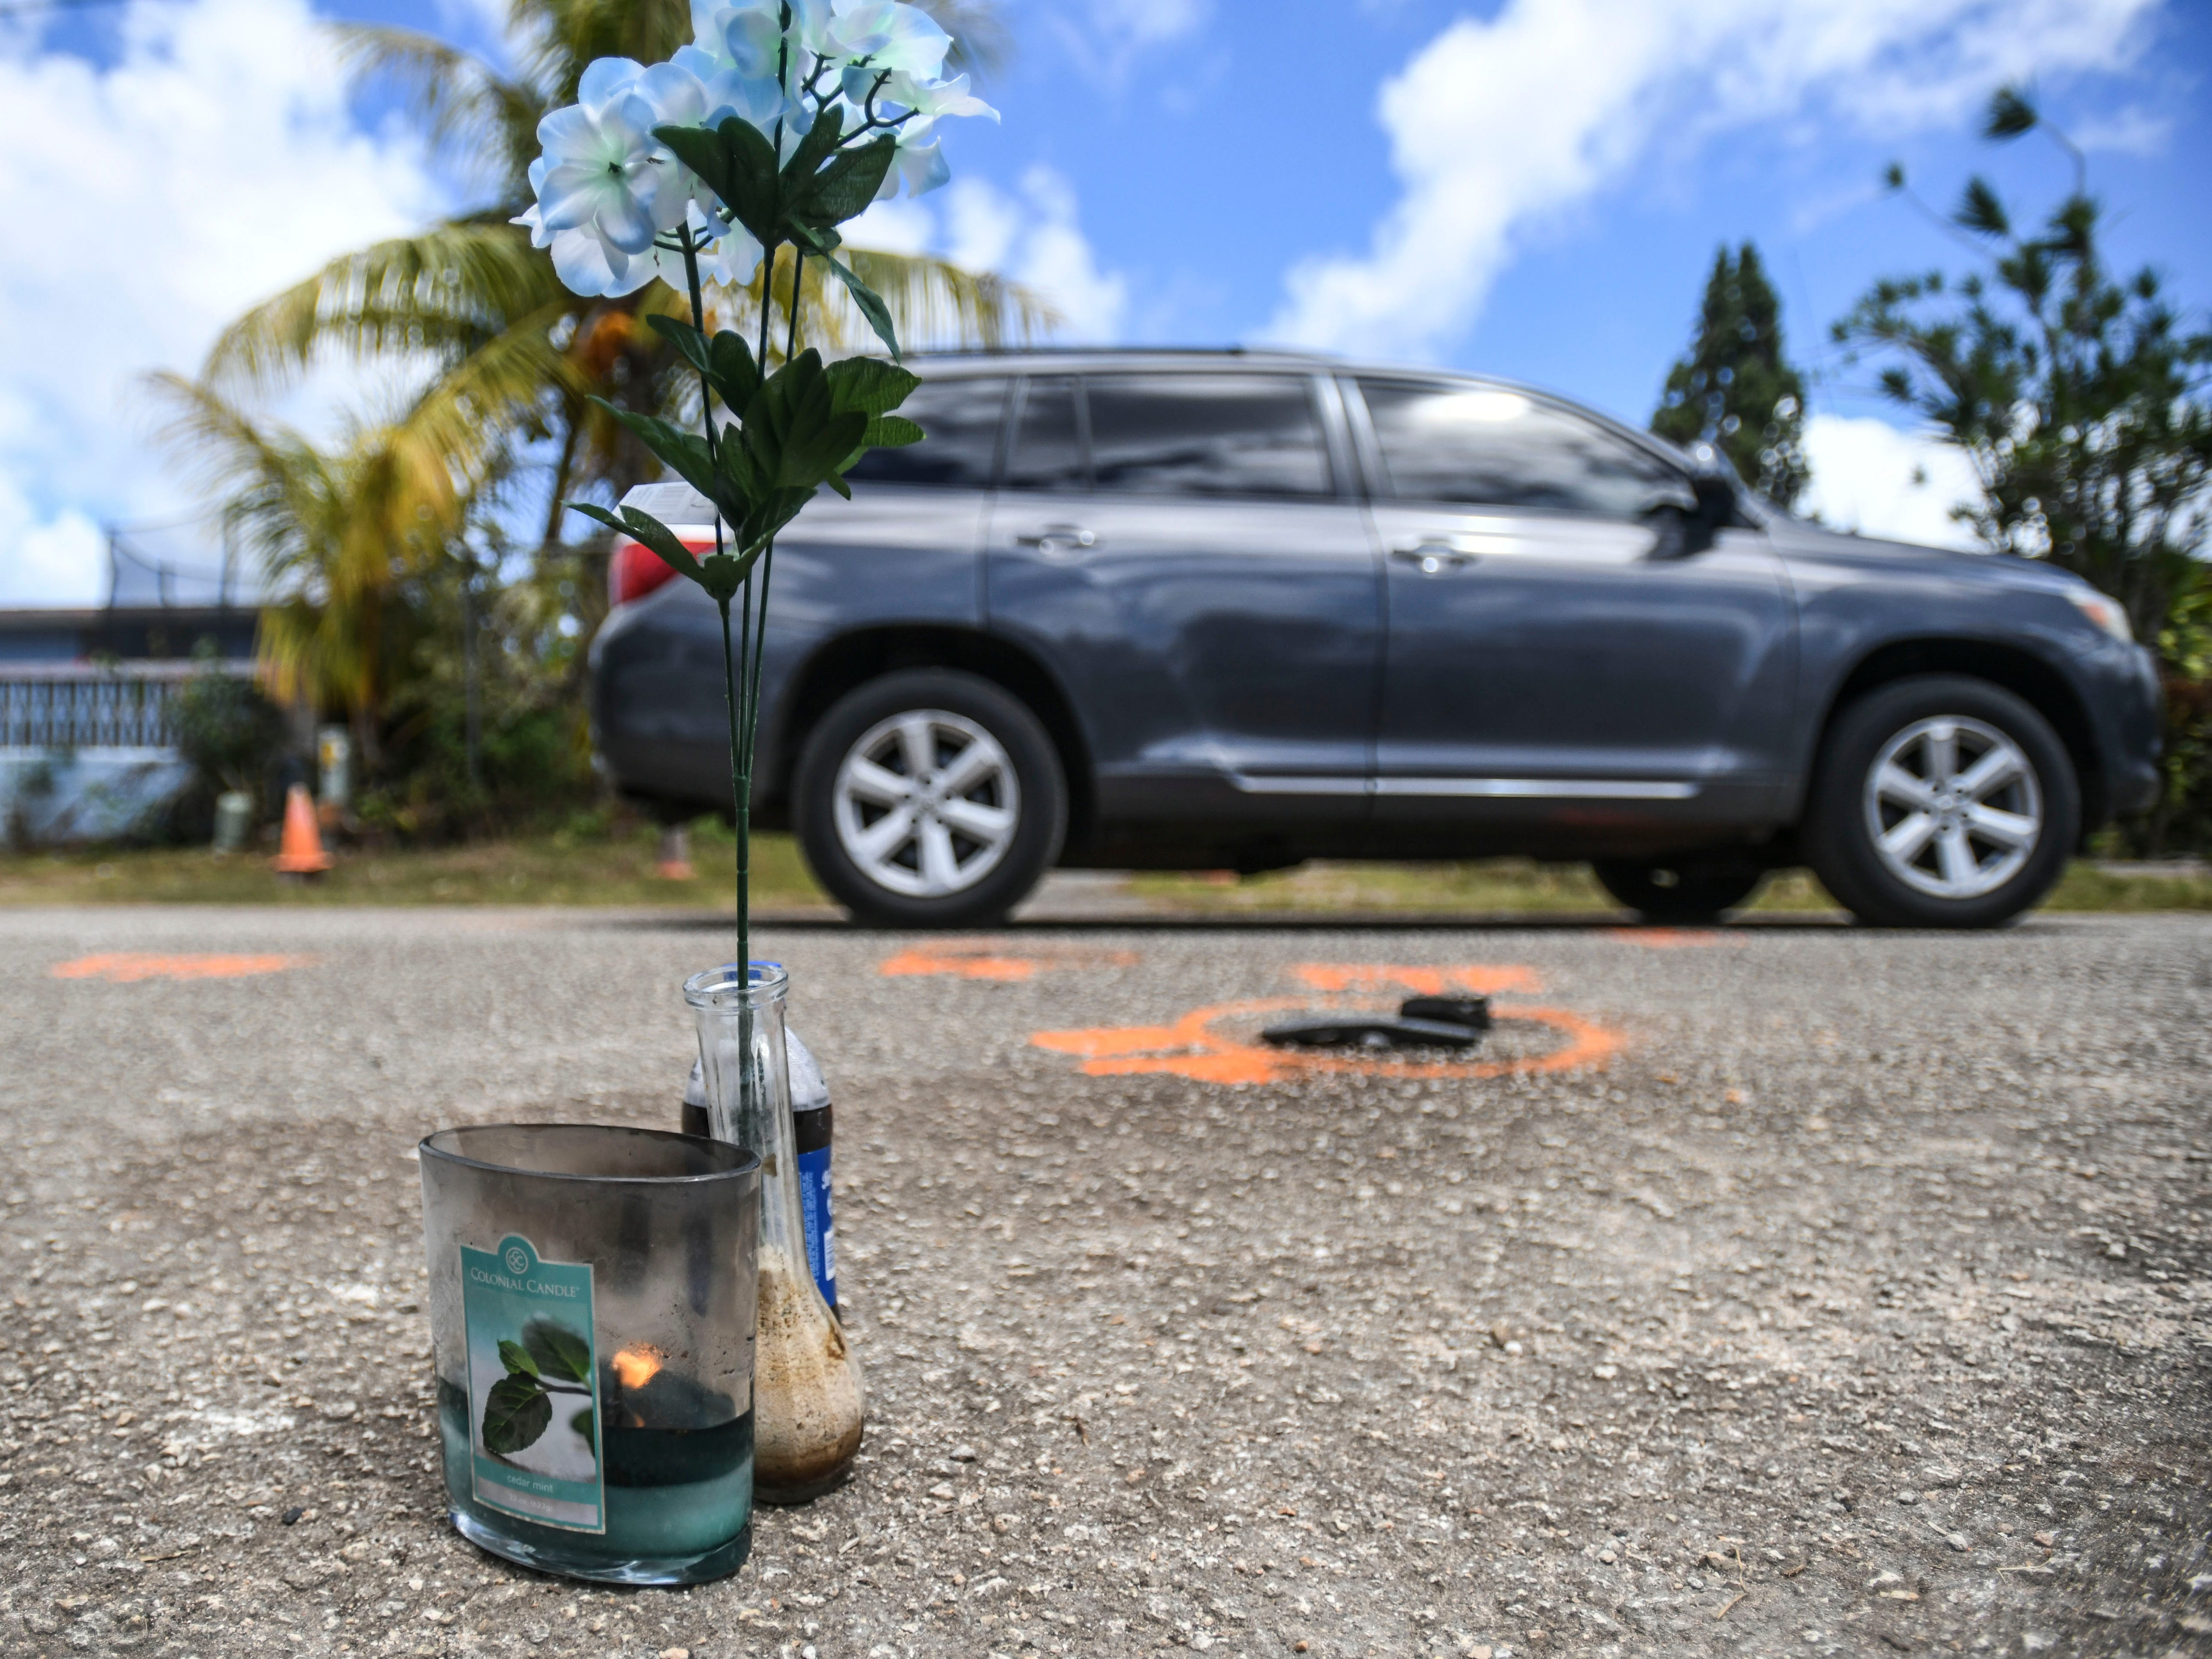 A vehicle passes a solemn arrangement of silk flowers, a candle and a soft drink, set near painted road markings on May 8, 2019, made by police investigators the previous evening at the scene of an auto-pedestrian incident in Dededo. On May 7, 2019, four-year-old nephew, Jericho Zion David, died after being struck by a motorist driving in front of the family's residence.